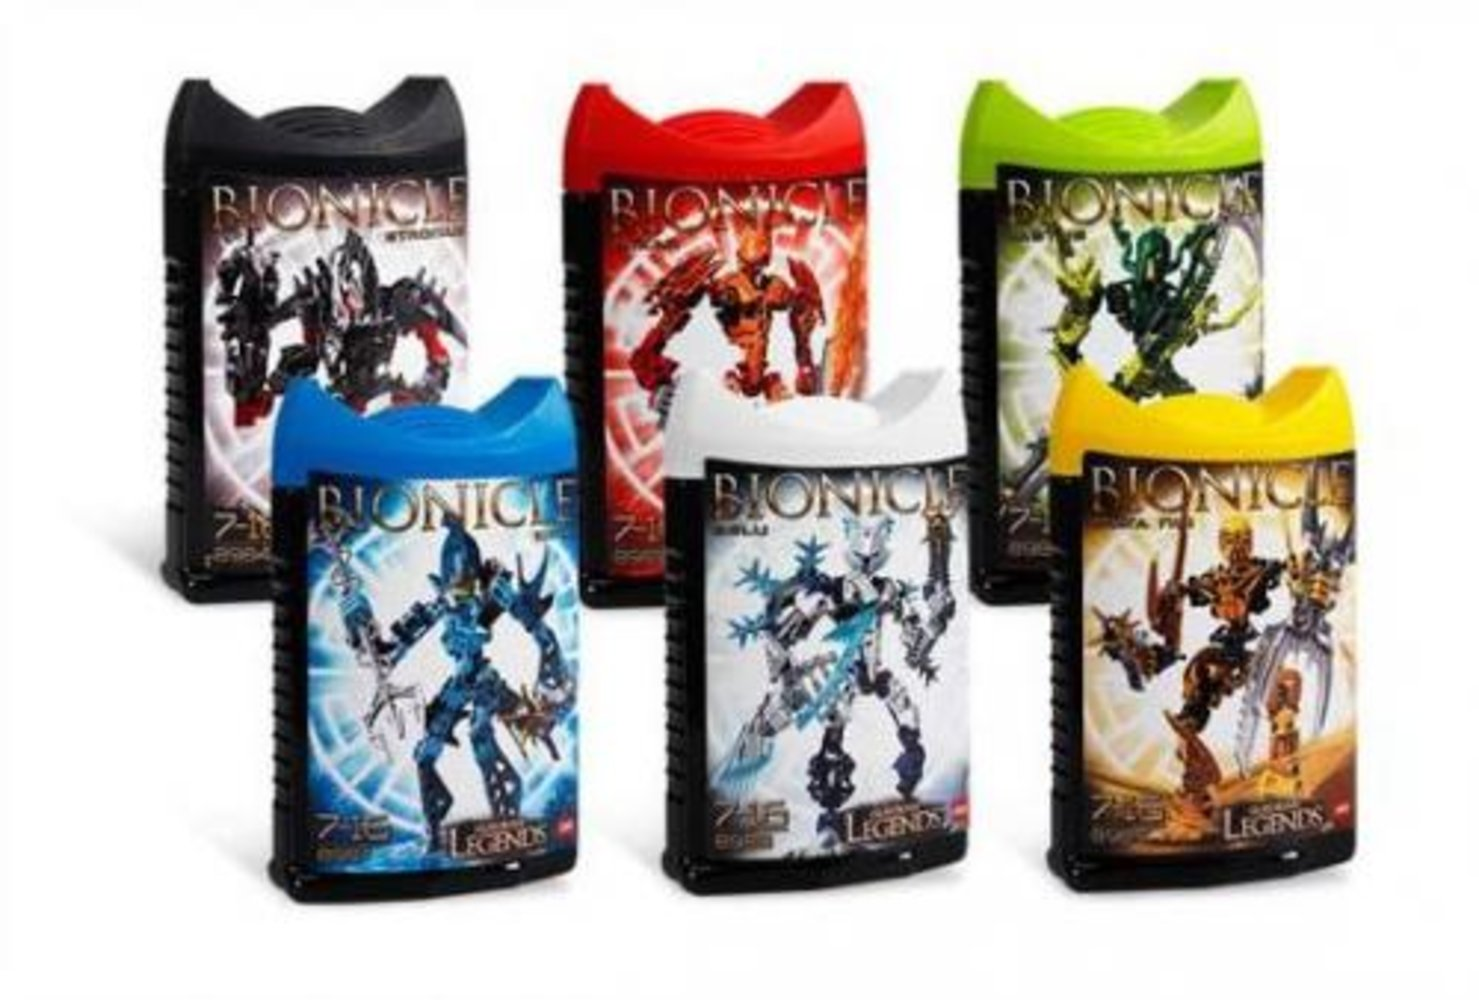 Bionicle Glatorian Legends Collection